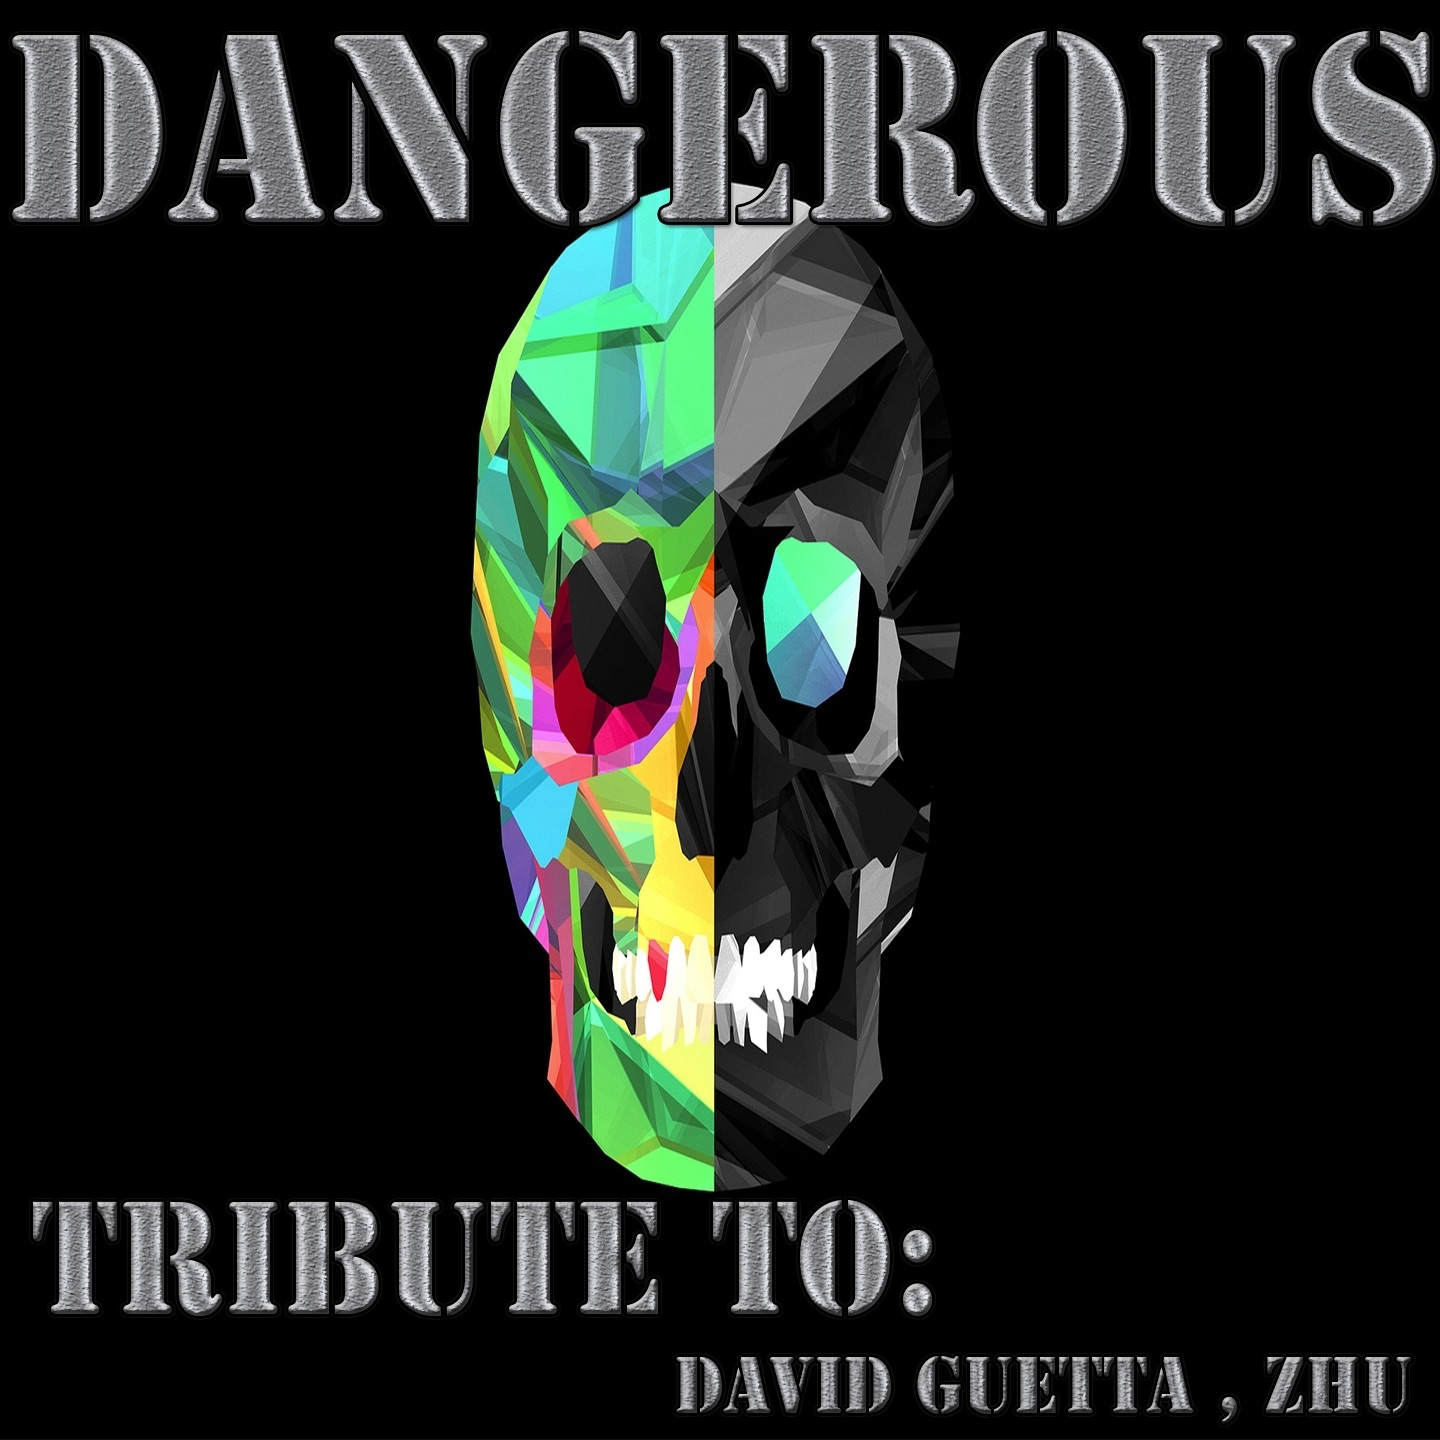 Dangerous: Tribute to David Guetta, Zhu - EP